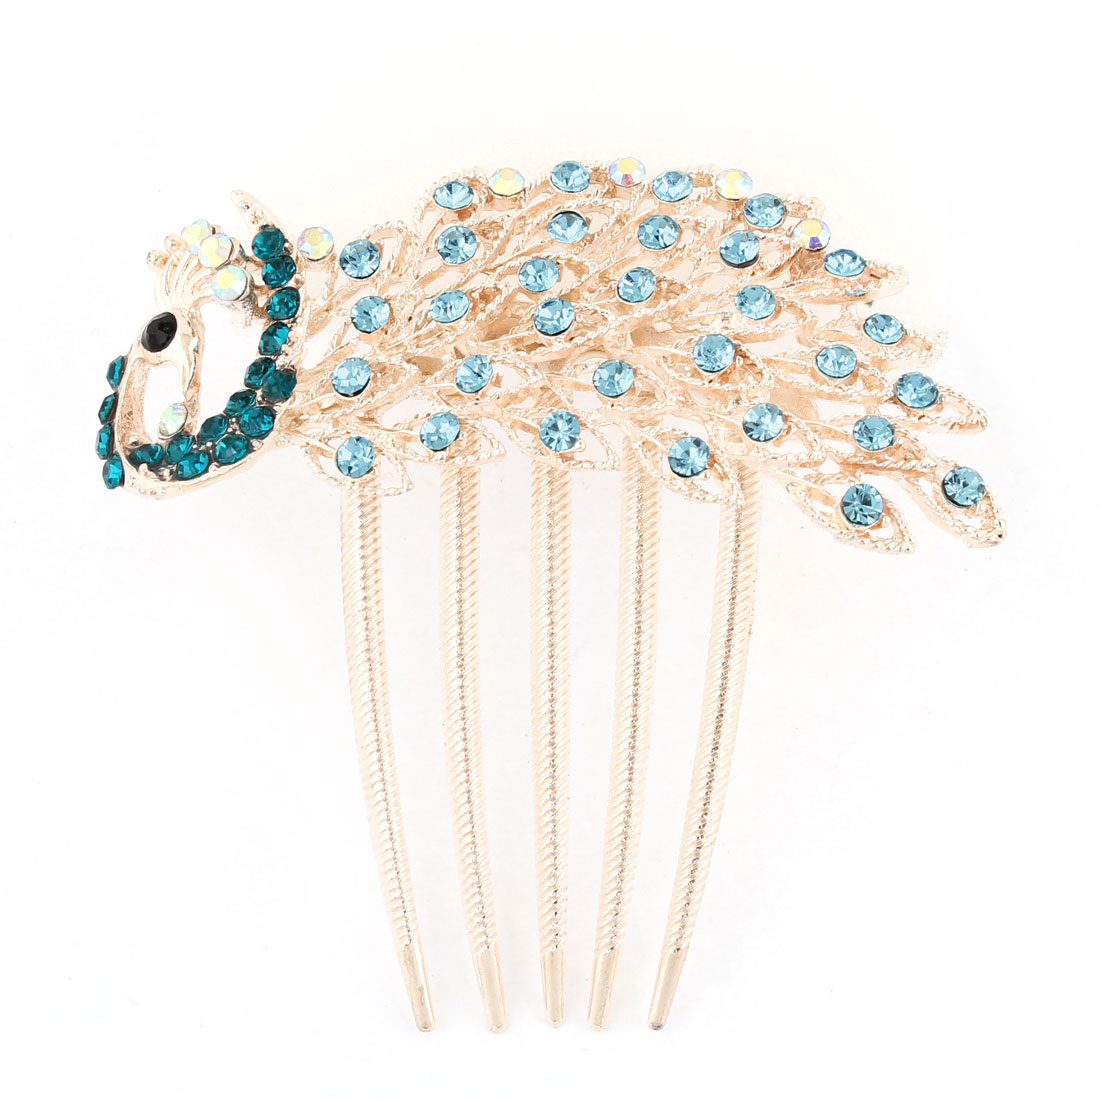 Teal Blue Bling Rhinestone Detail Metal Prong Peacock Hair Comb Clip Copper Tone